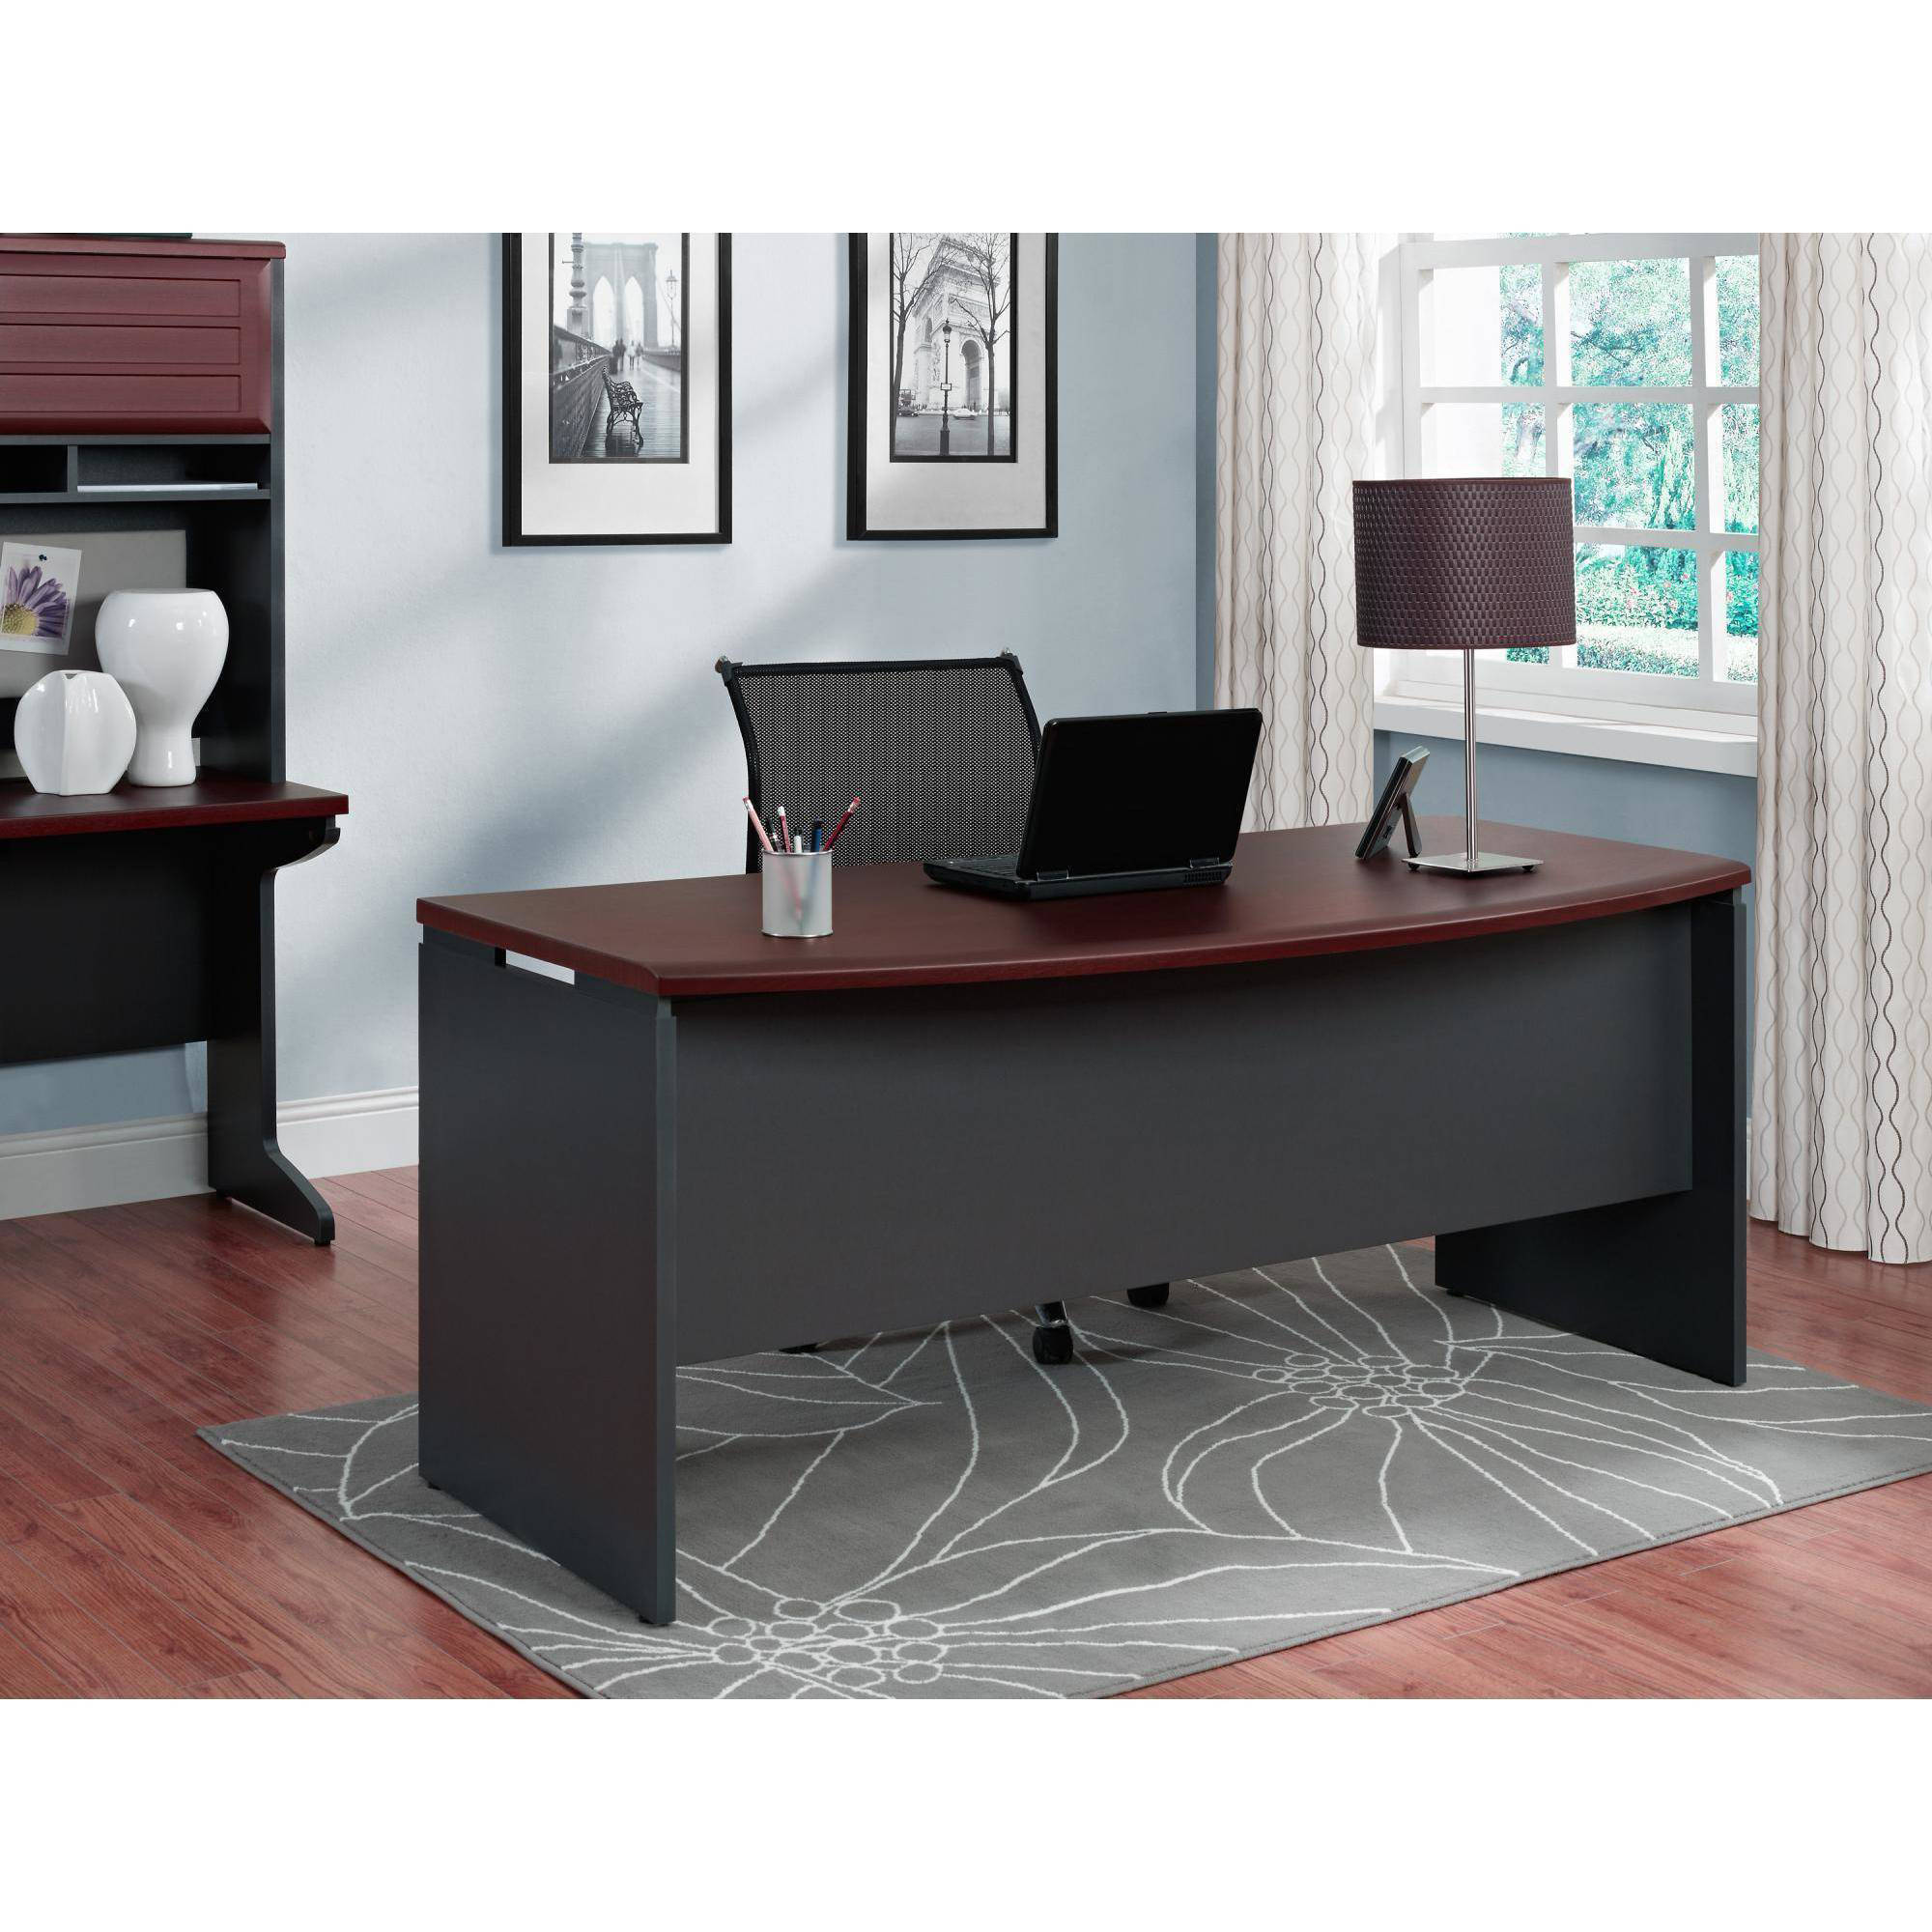 ct furniture cado collection desk jesper zebrano executive modern office